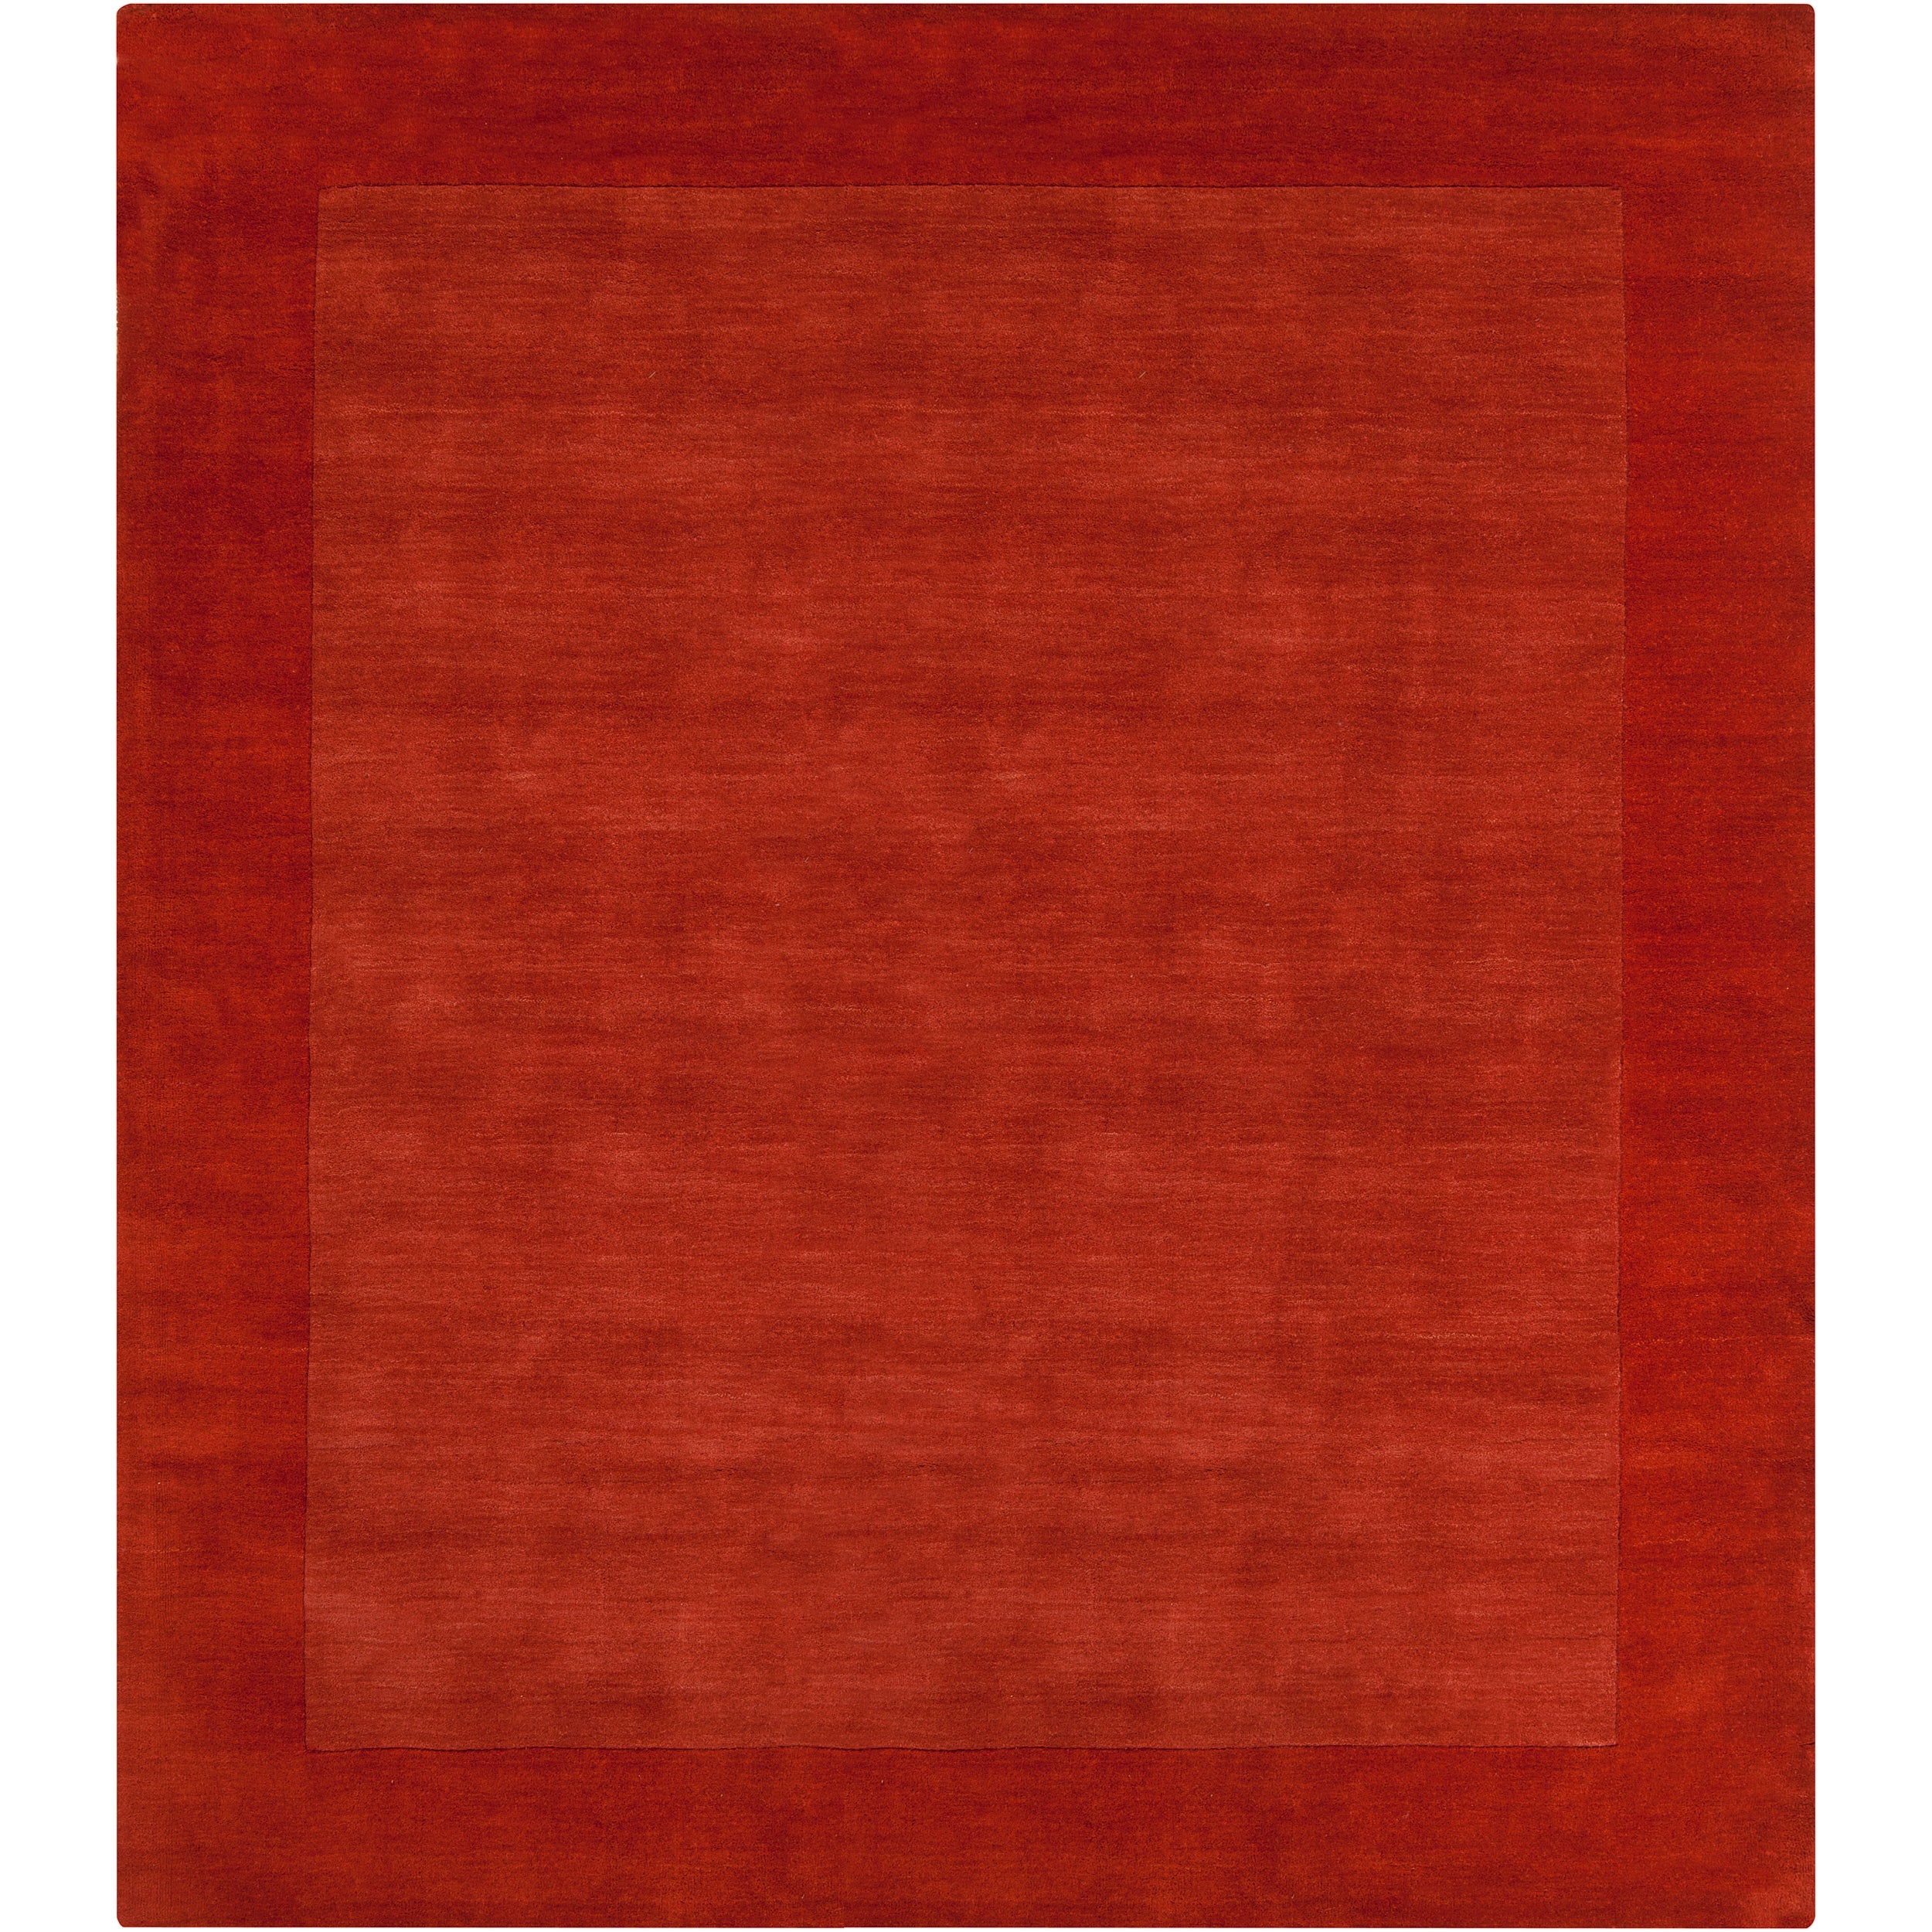 Hand-crafted Orange Tone-On-Tone Bordered Pechora Wool Rug (8' Square)